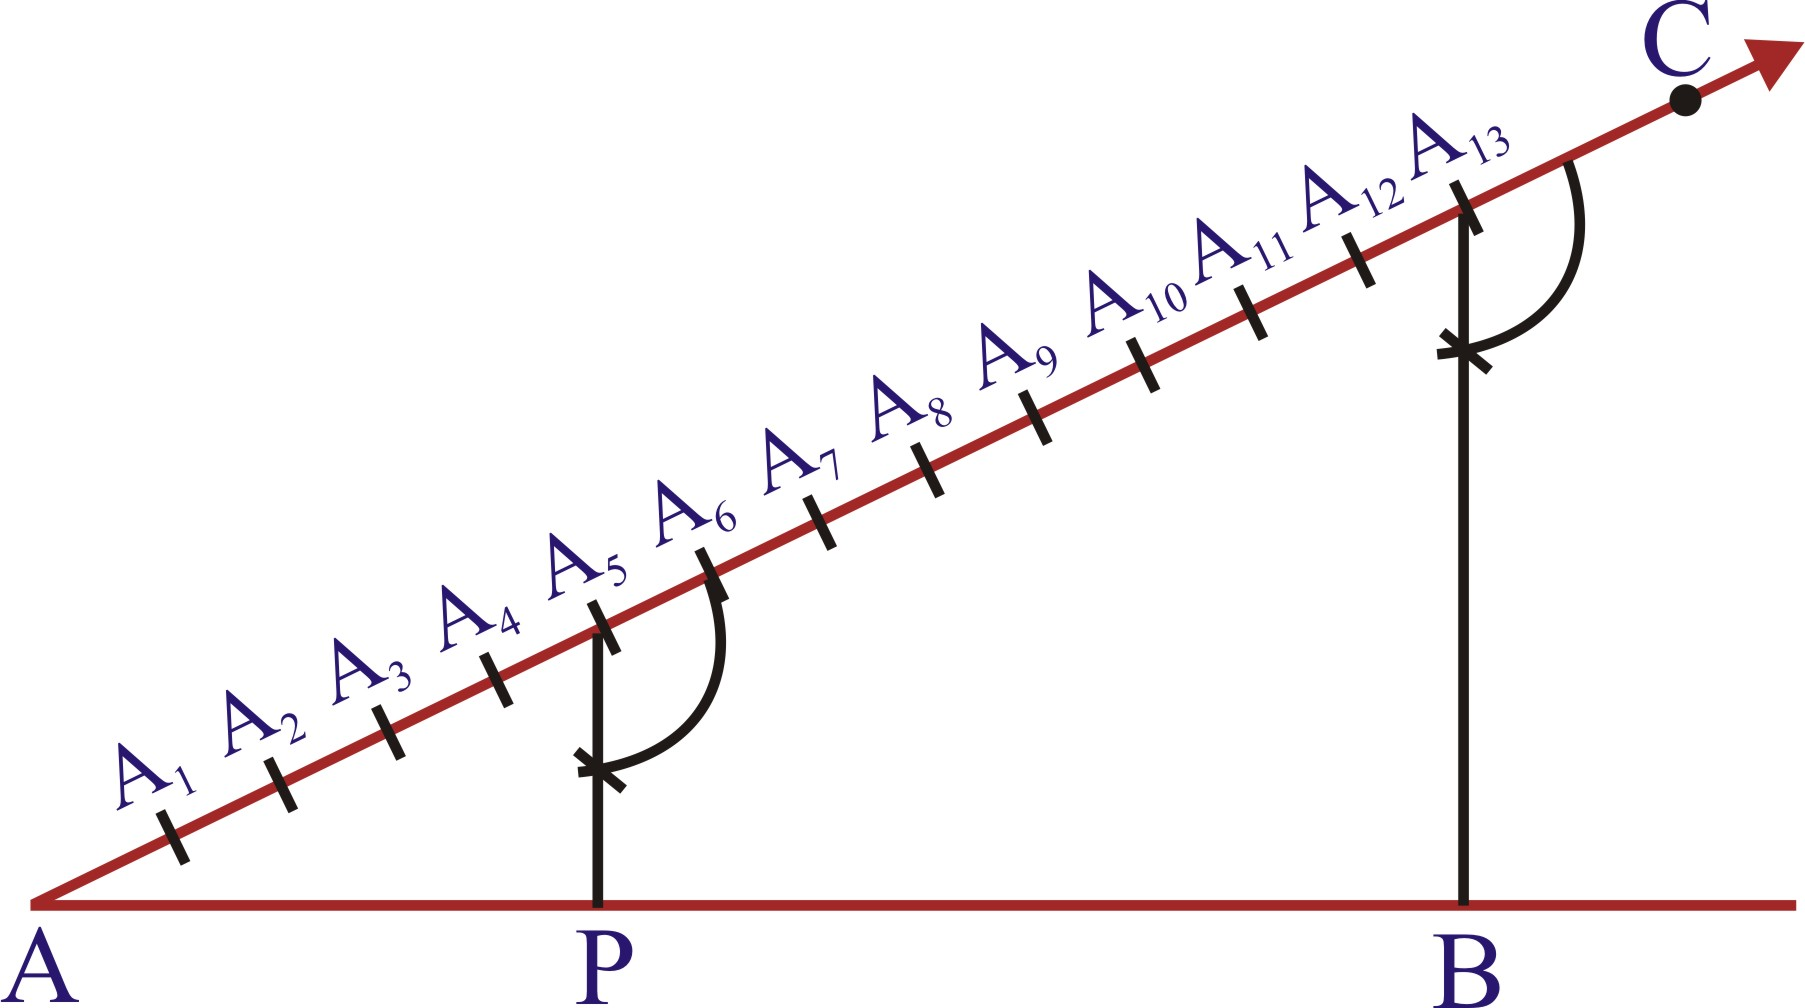 Drawing Lines In Cm Worksheet : Division of a line segment into given ratio plus topper